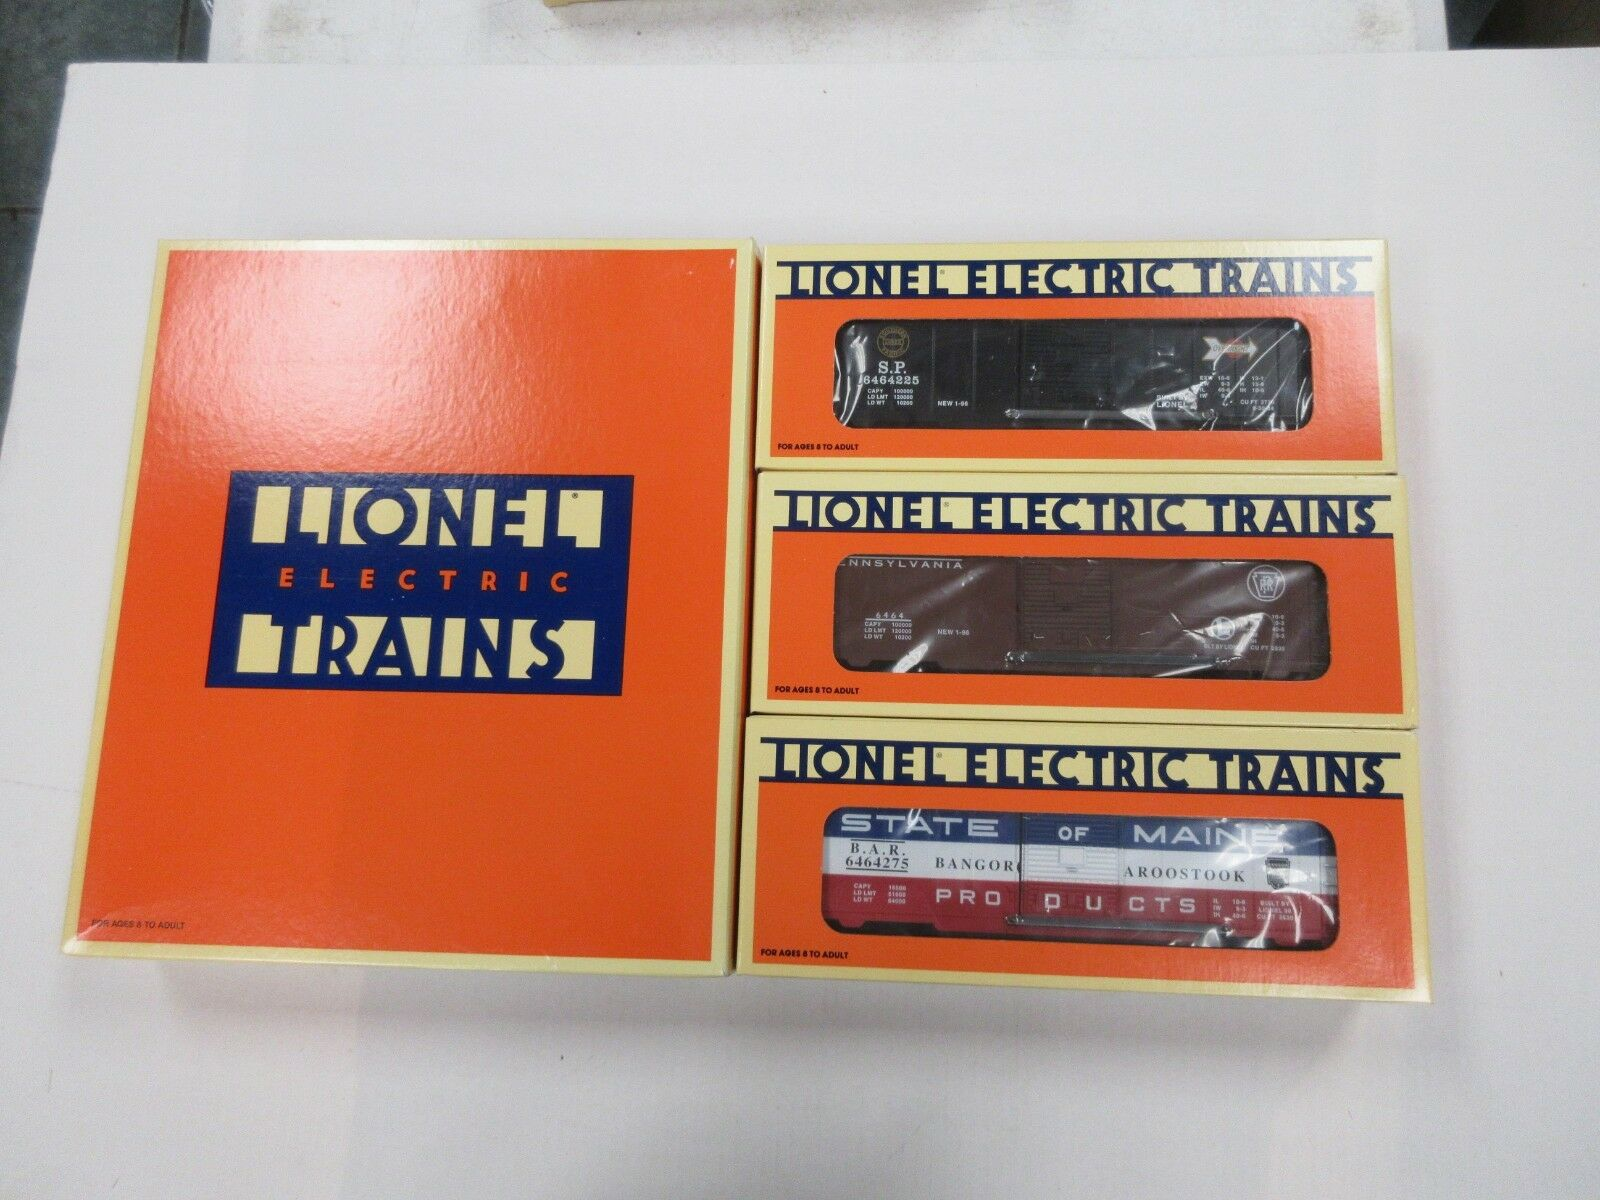 LIONEL ELECTRIC TRAINS 6464 BOXCAR SERIES 4